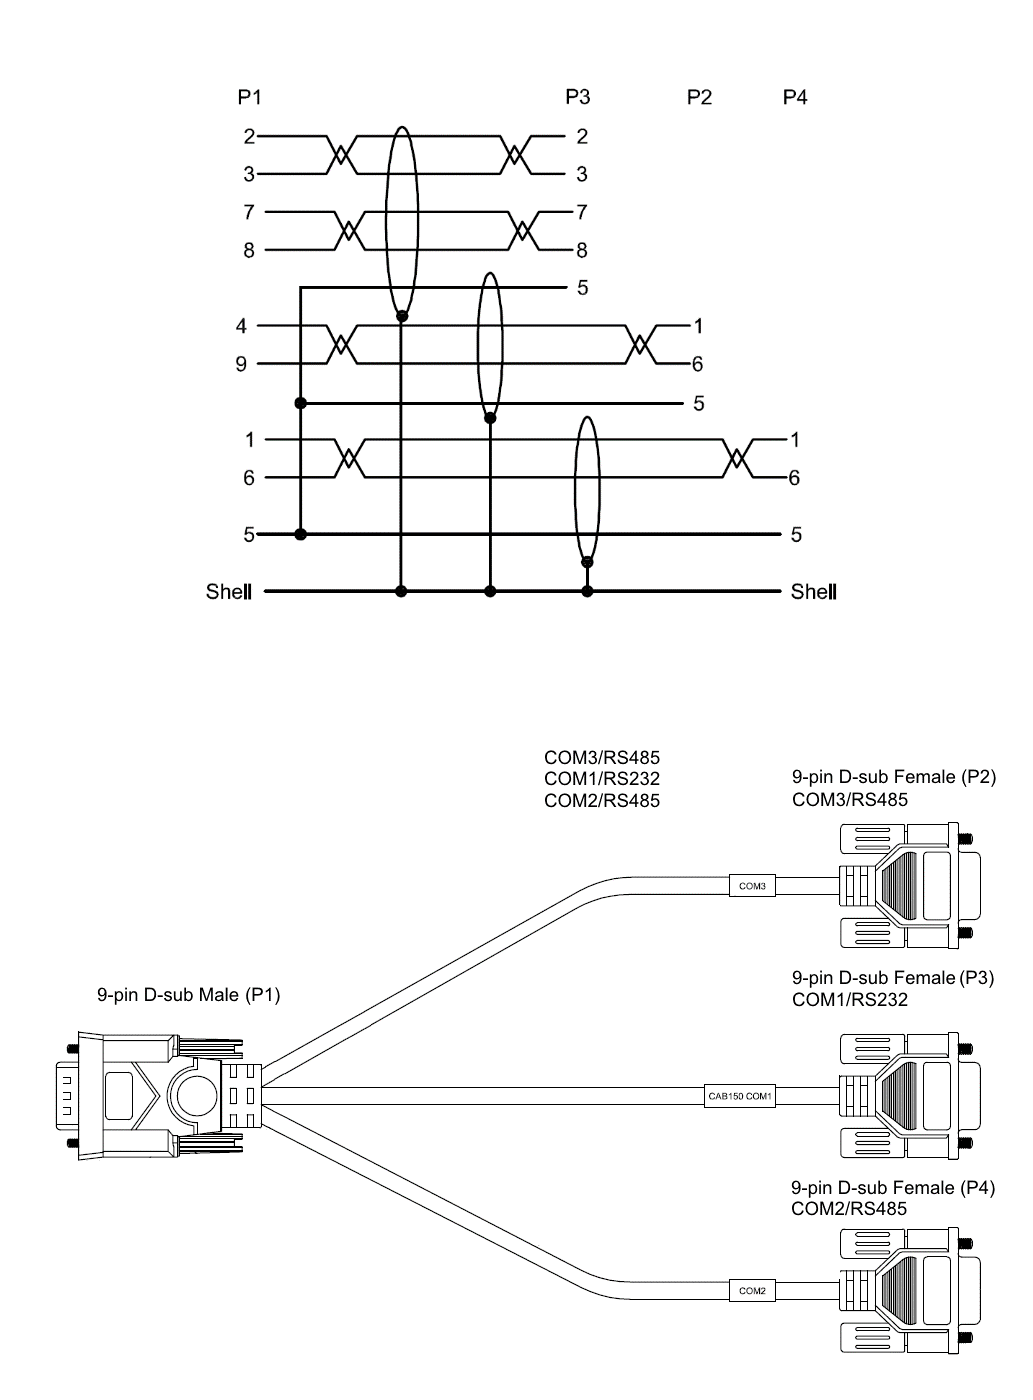 Rs232 Pin Out Diagram